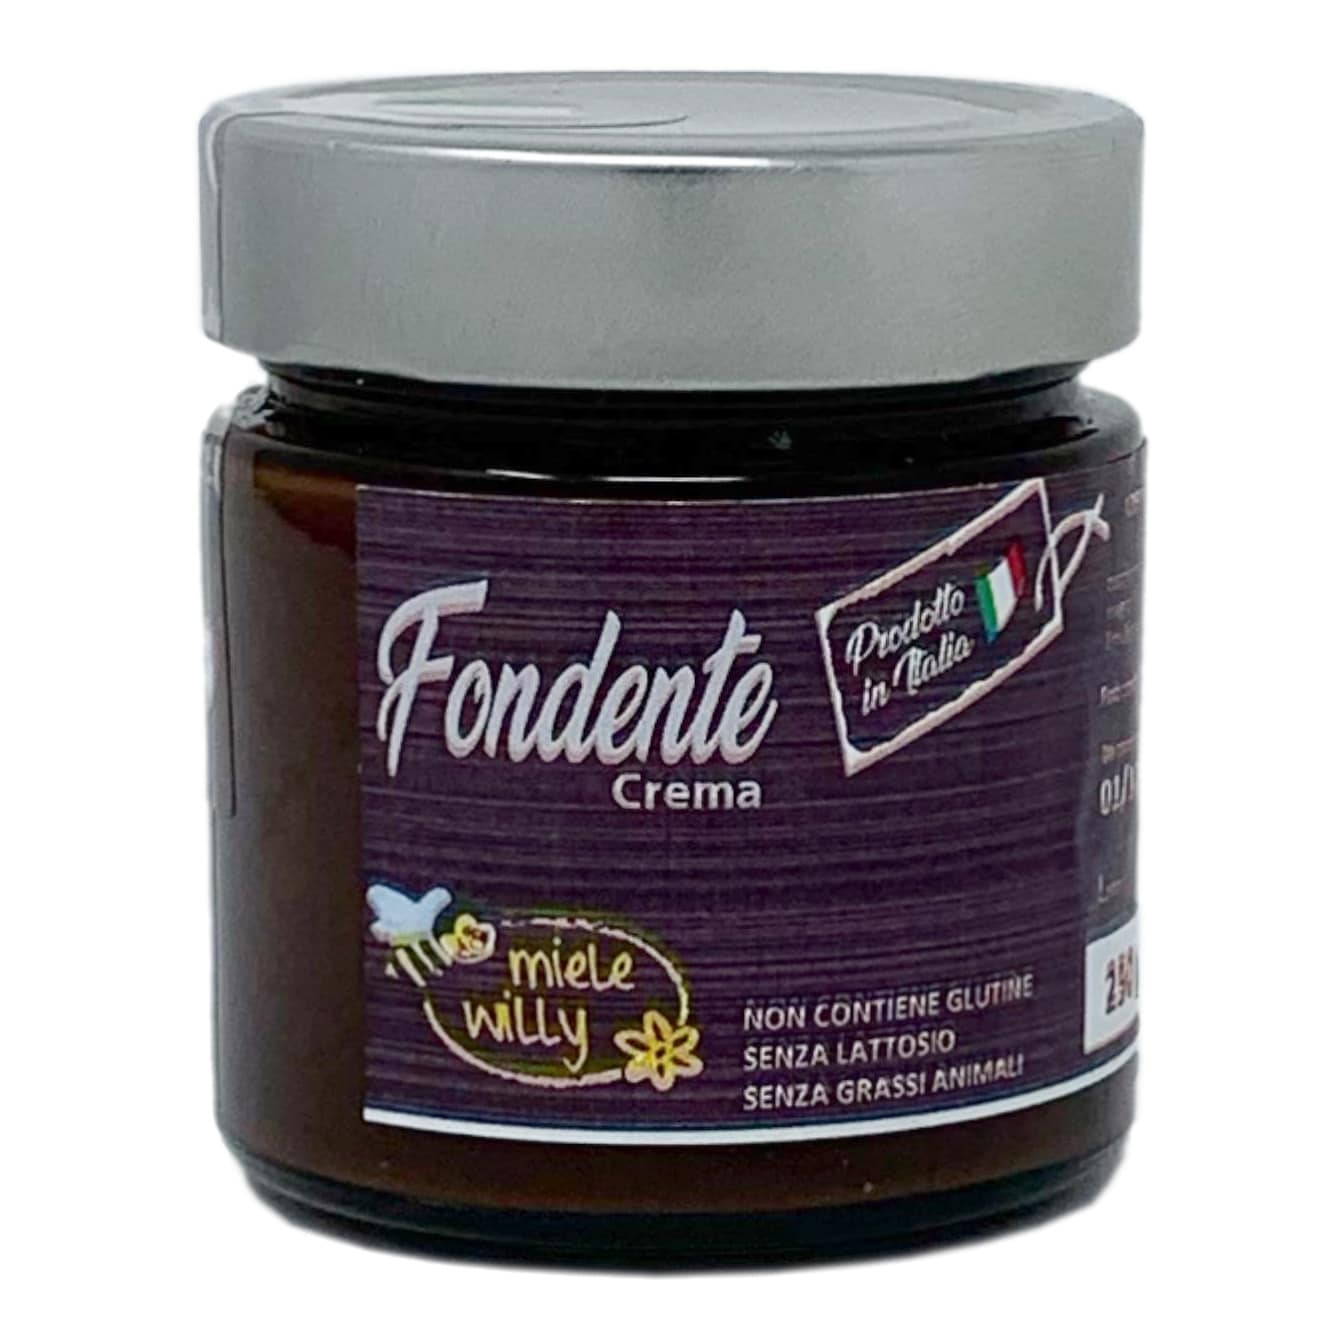 CREMA FONDENTE Spalmabile 250G Miele Willy